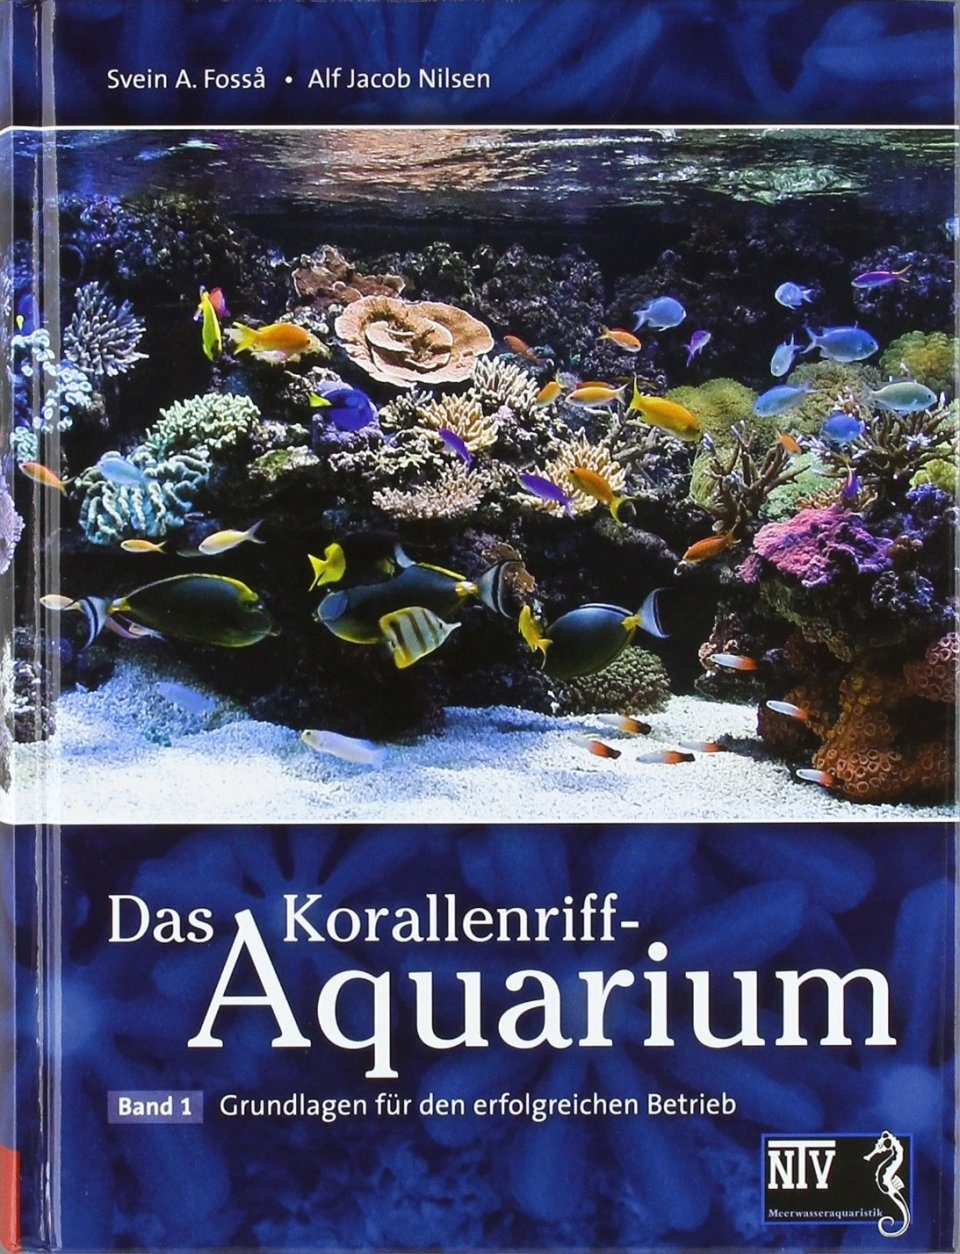 Korallenriff-Aquarium, Band 1: Grundlagen für den Erfolgreichen Betrieb [Coral Reef Aquaria, Volume 1: Fundamentals for Successful Operation]